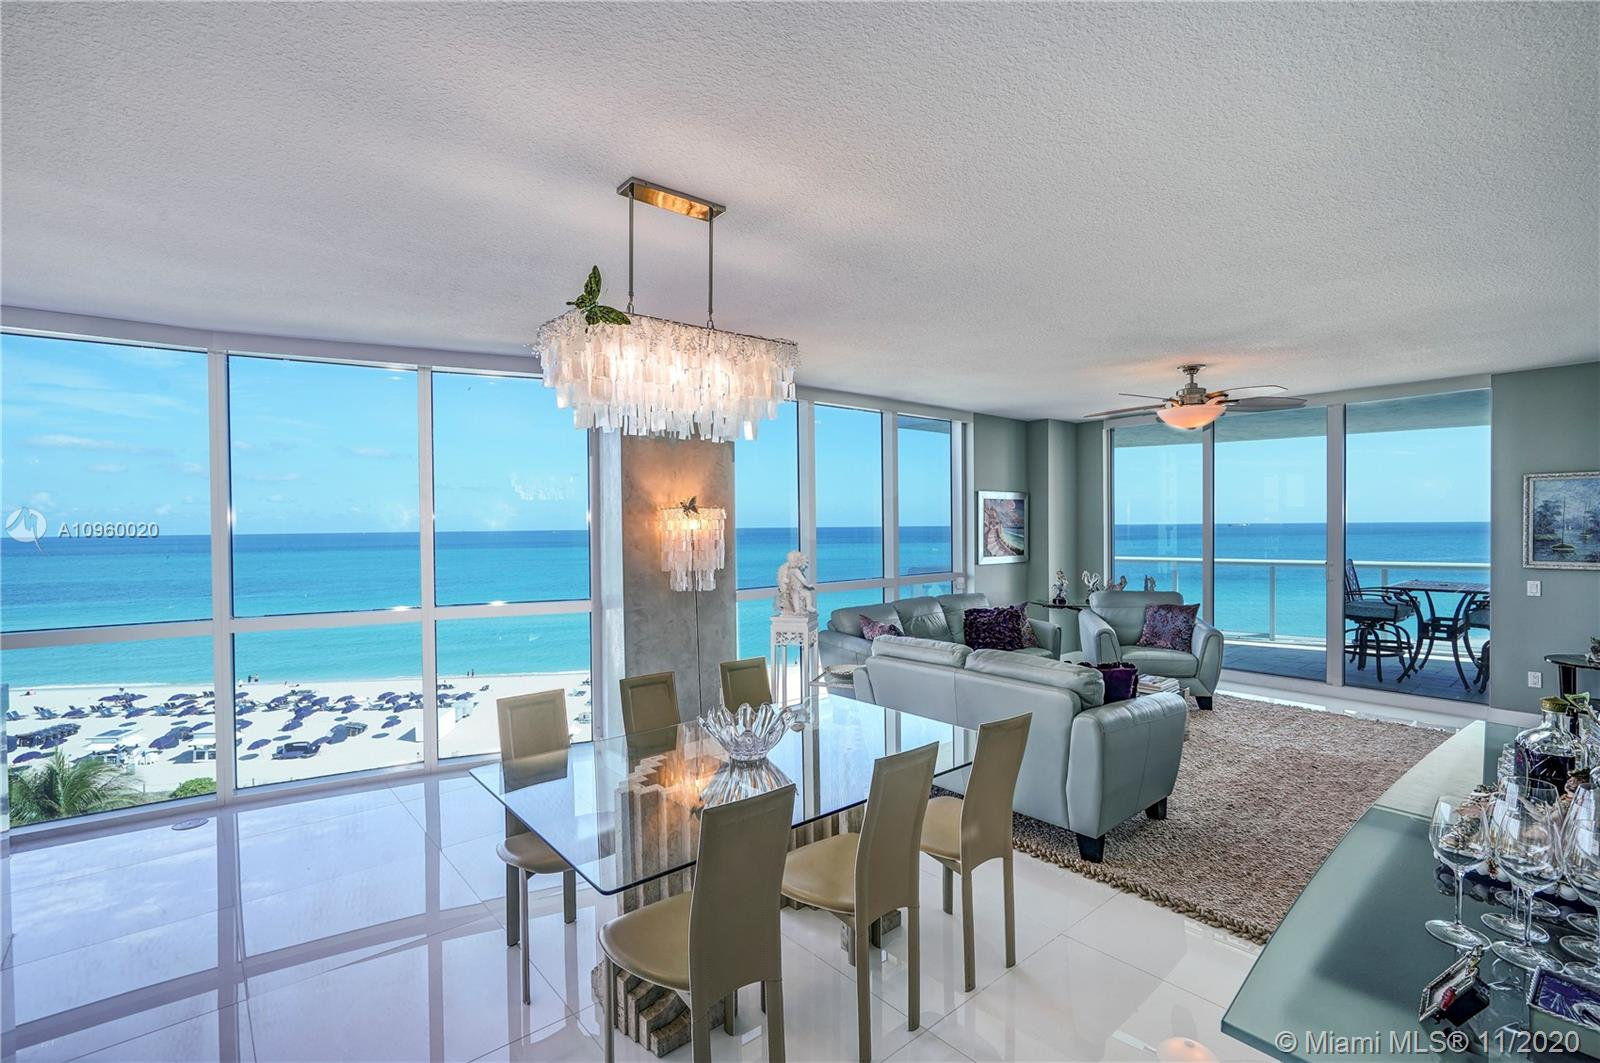 """Rarely Available Panoramic Ocean Facing """"06"""" line at Mosaic. Spanning the entire East side of the building with floor-to-ceiling windows allows for Natural Light and Stunning Views of the Ocean and of Miami Beach. Sunrise Balcony and Sunset Balcony, both are beautiful day and night. Master Bedroom sits on the Ocean on the Southeast side.  Mosaic is a luxury boutique building that offers private elevator, beach service, pool, gym, club room, wine room, humidor and movie theater. Located in the Faena District, Miami's hottest neighborhood. Steps from Soho House, Fontainebleau, Faena, and the Edition. Your backyard is the Ocean and Miami Beach's Boardwalk. Seller Financing Available."""